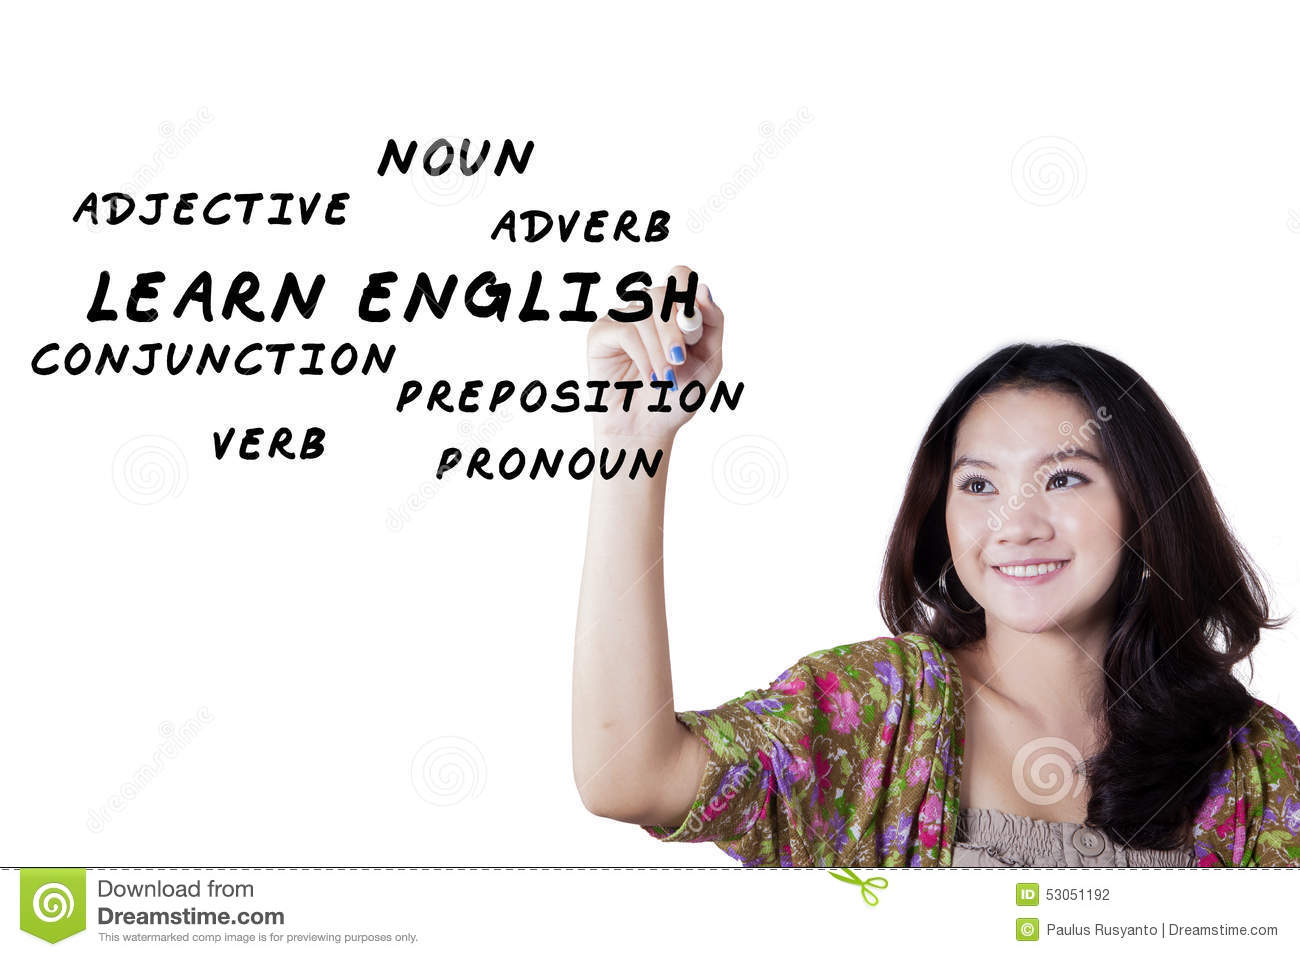 Learn english wellingborough school